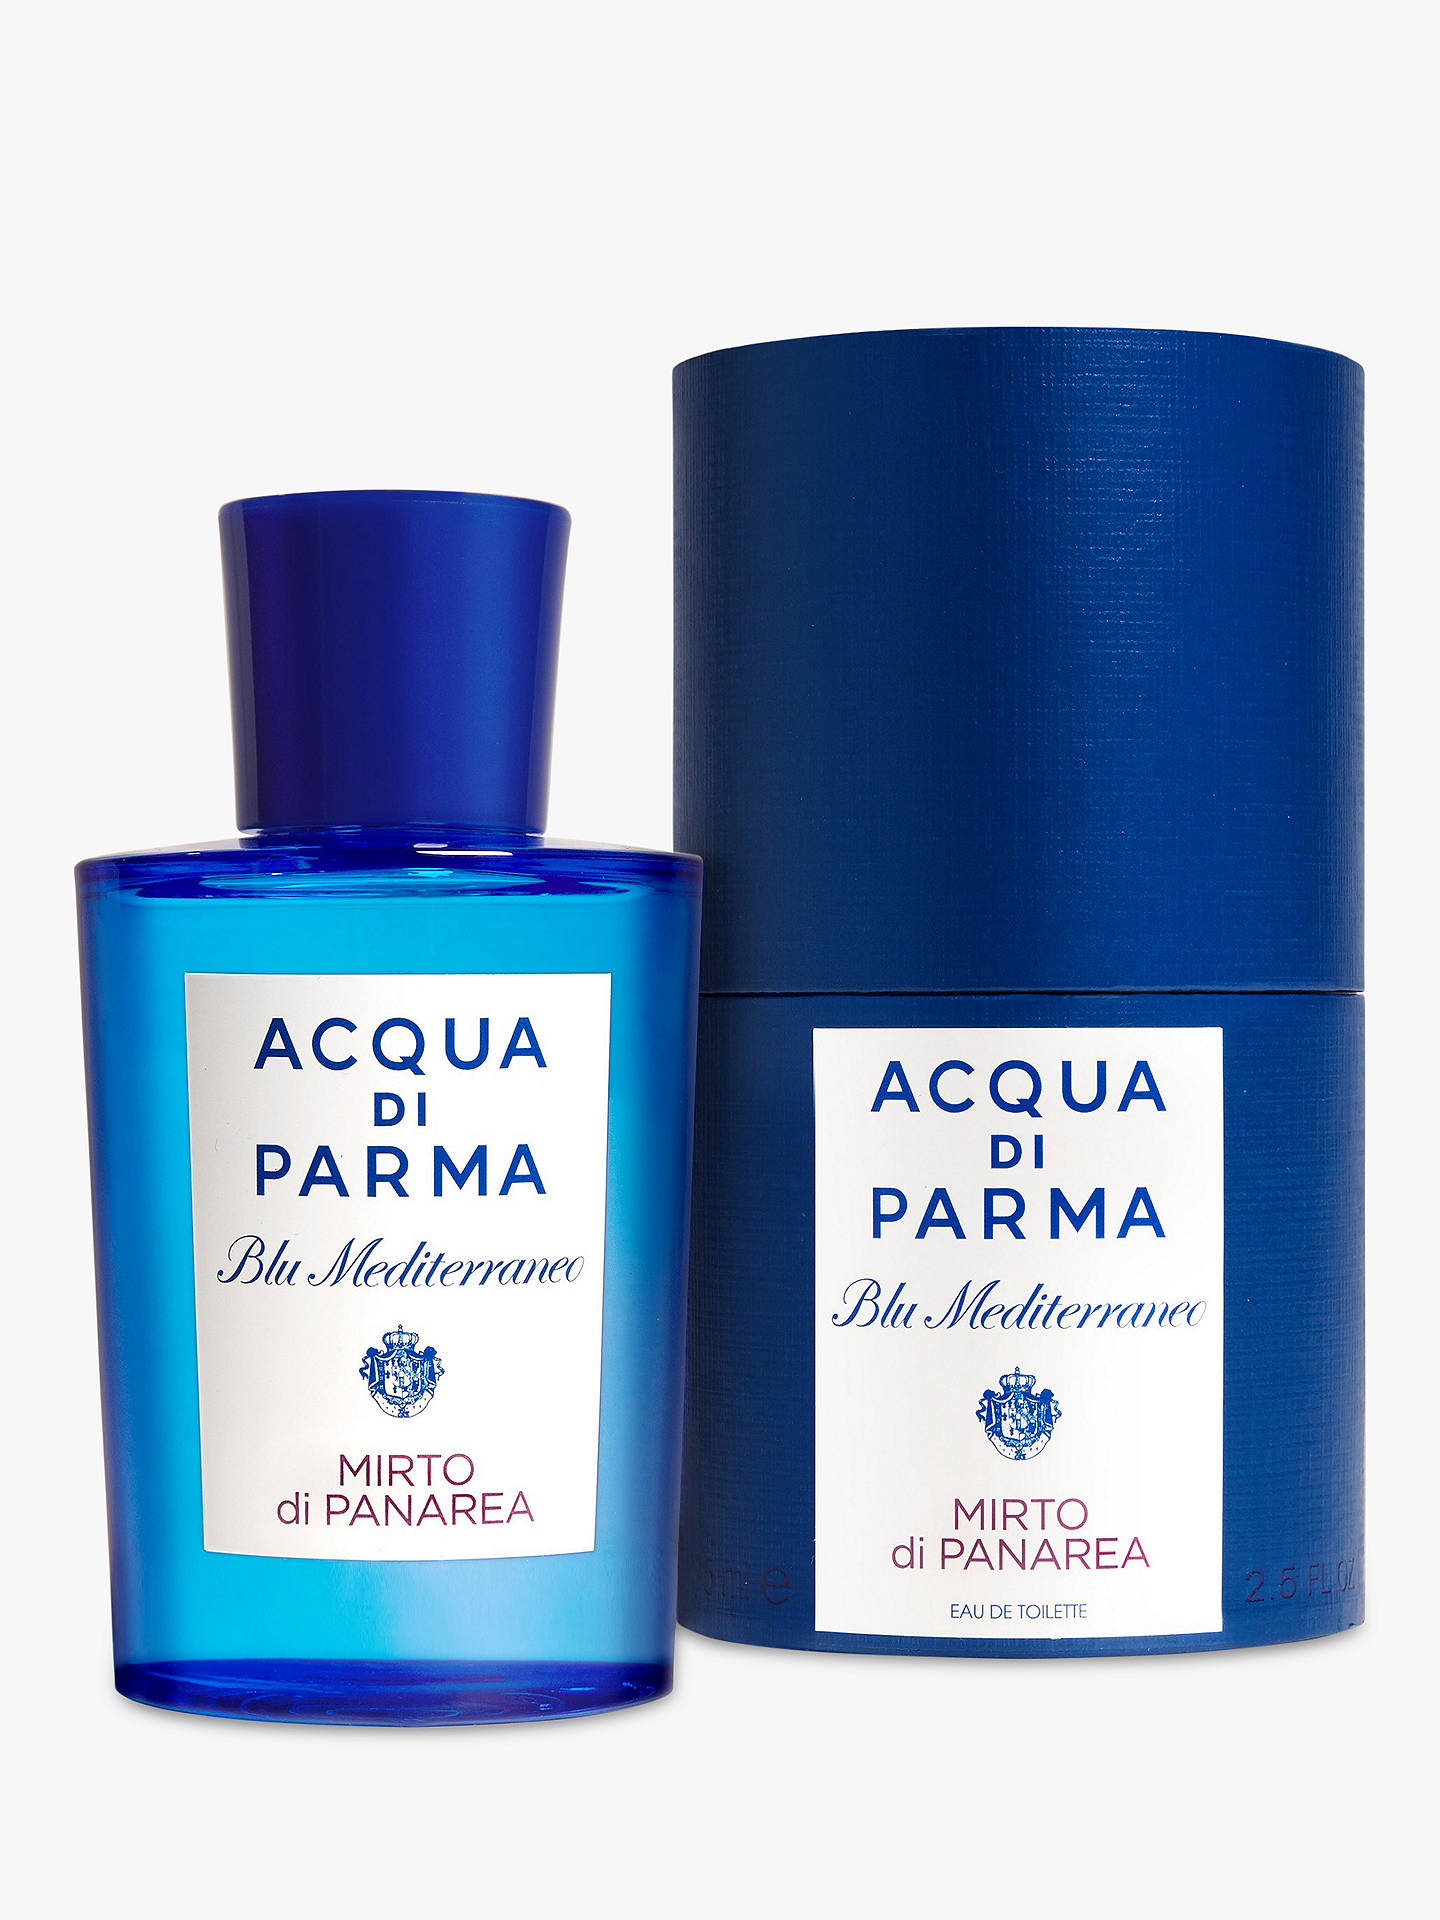 Buy Acqua di Parma Blu Mediterraneo Mirto di Panarea Eau de Toilette Spray, 150ml Online at johnlewis.com